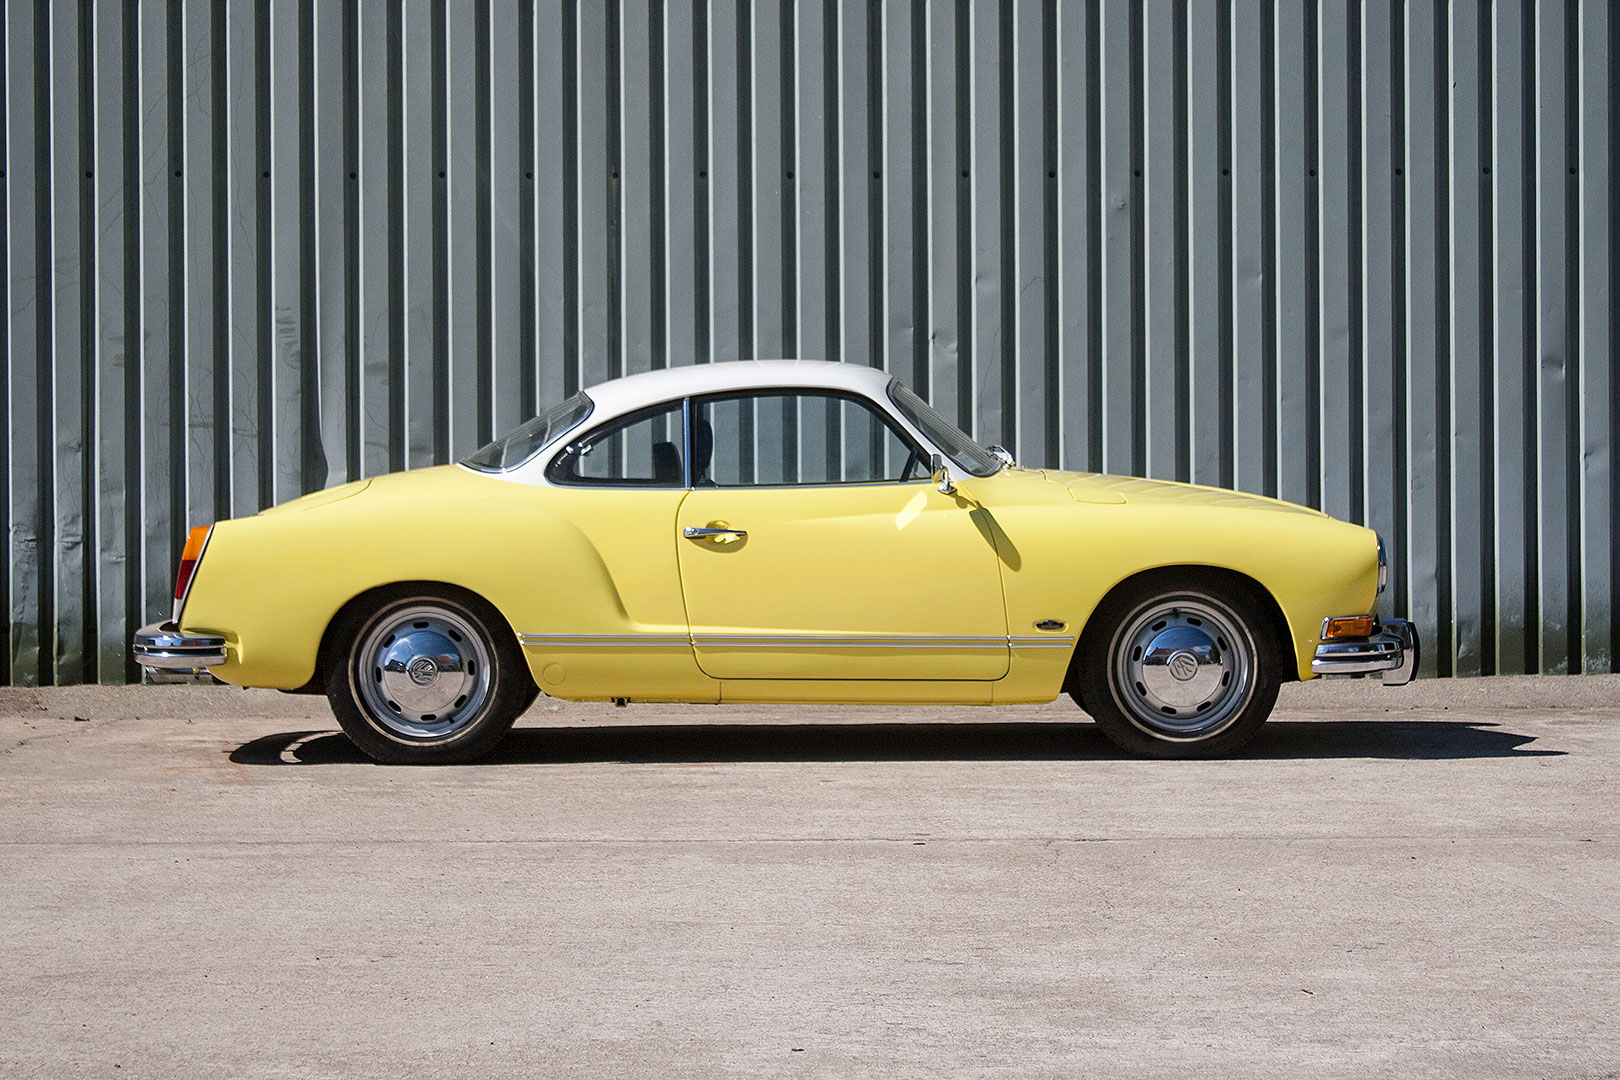 Vw Karmann Ghia 1973 Type 14 Coupe Jersey Classic And